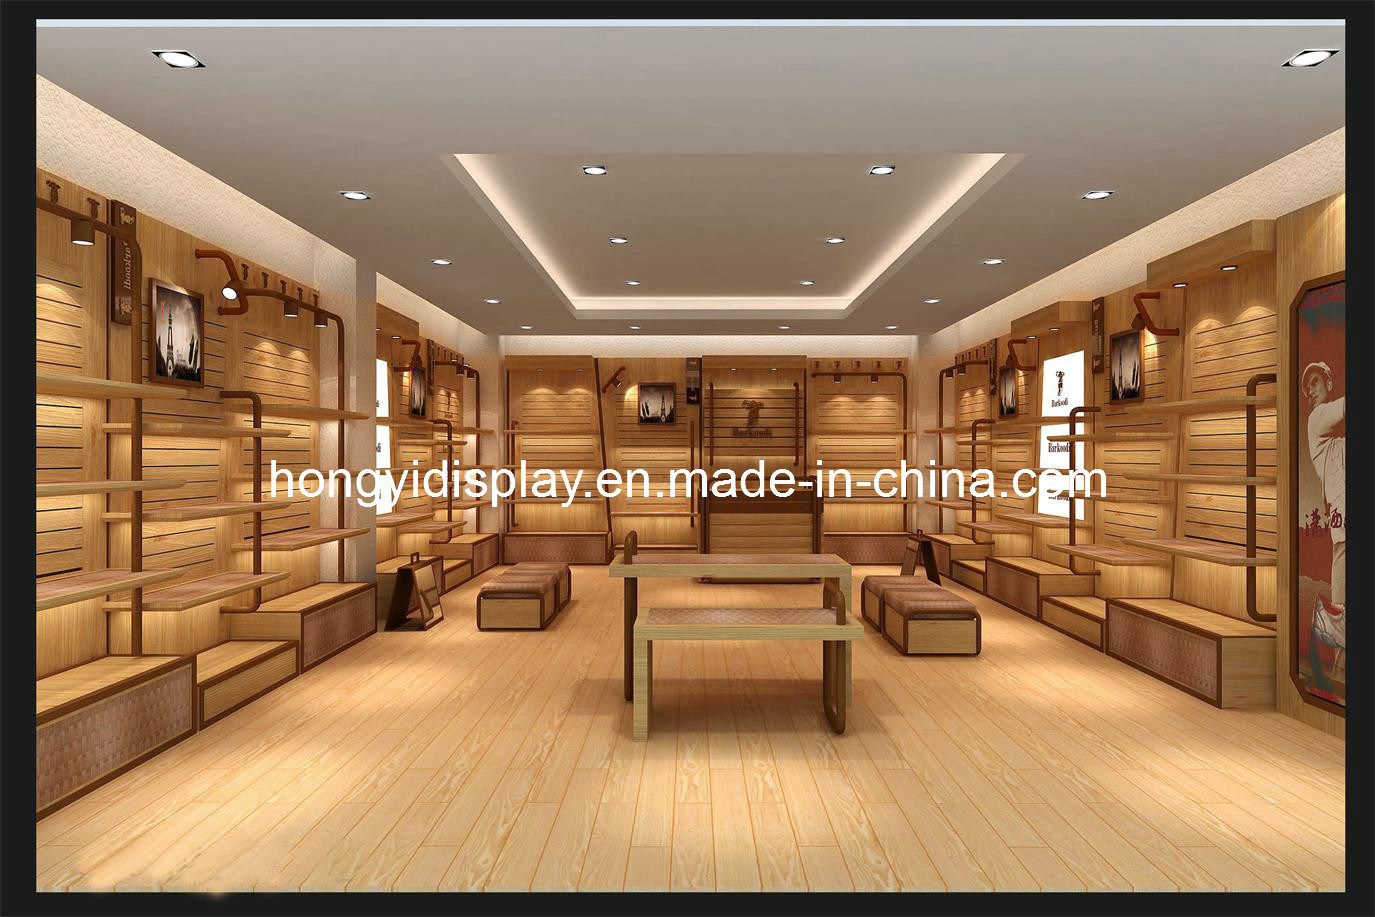 china men shoes shop decoration for store fixture china store display retail display. Black Bedroom Furniture Sets. Home Design Ideas